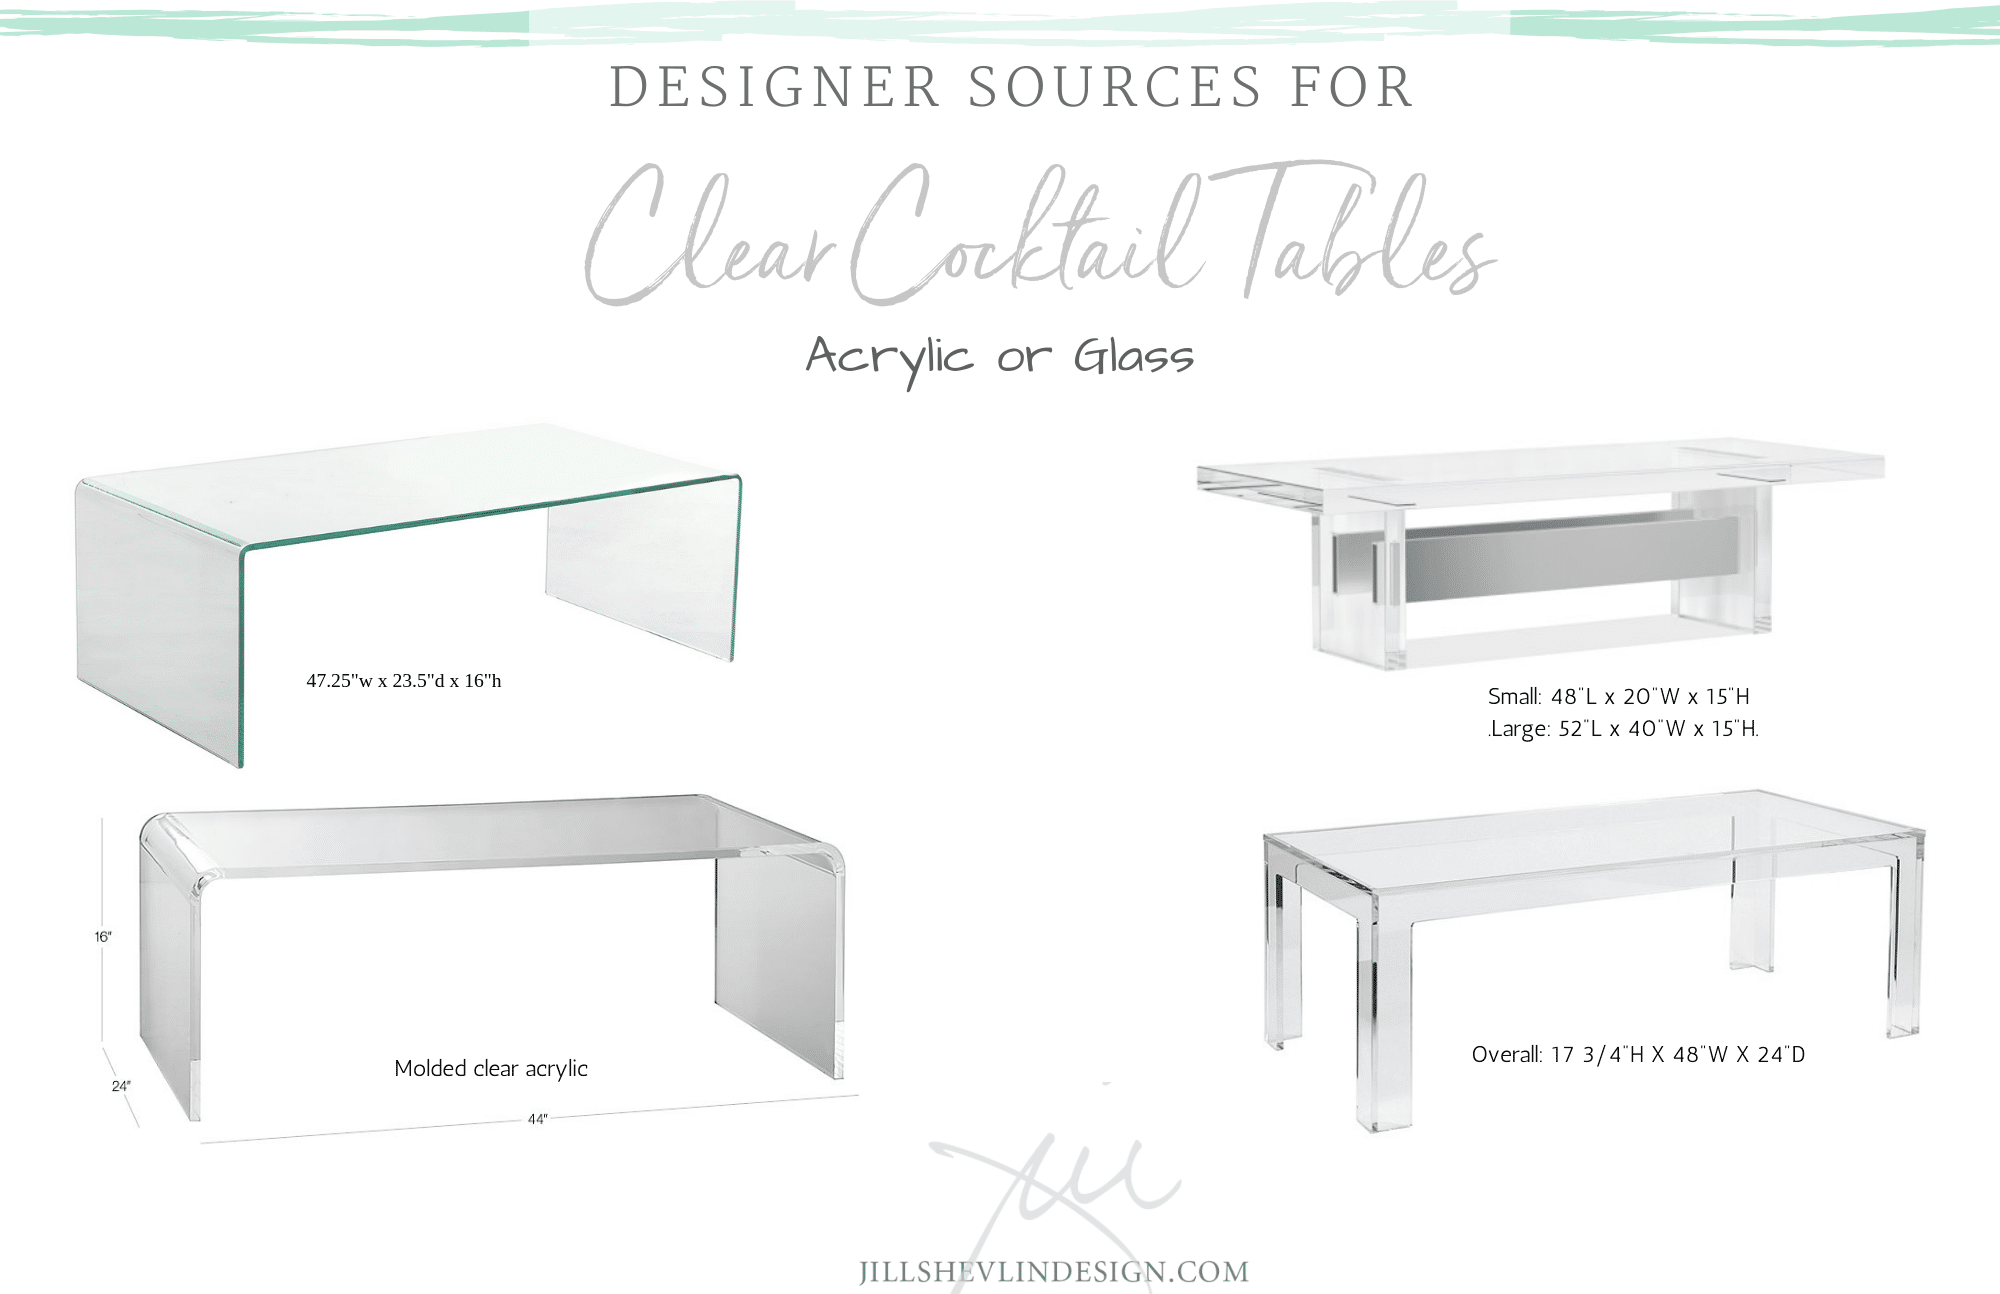 Designer Source for Clear Cocktail Tables Vero Beach Interior Designer Jill Shevlin Design